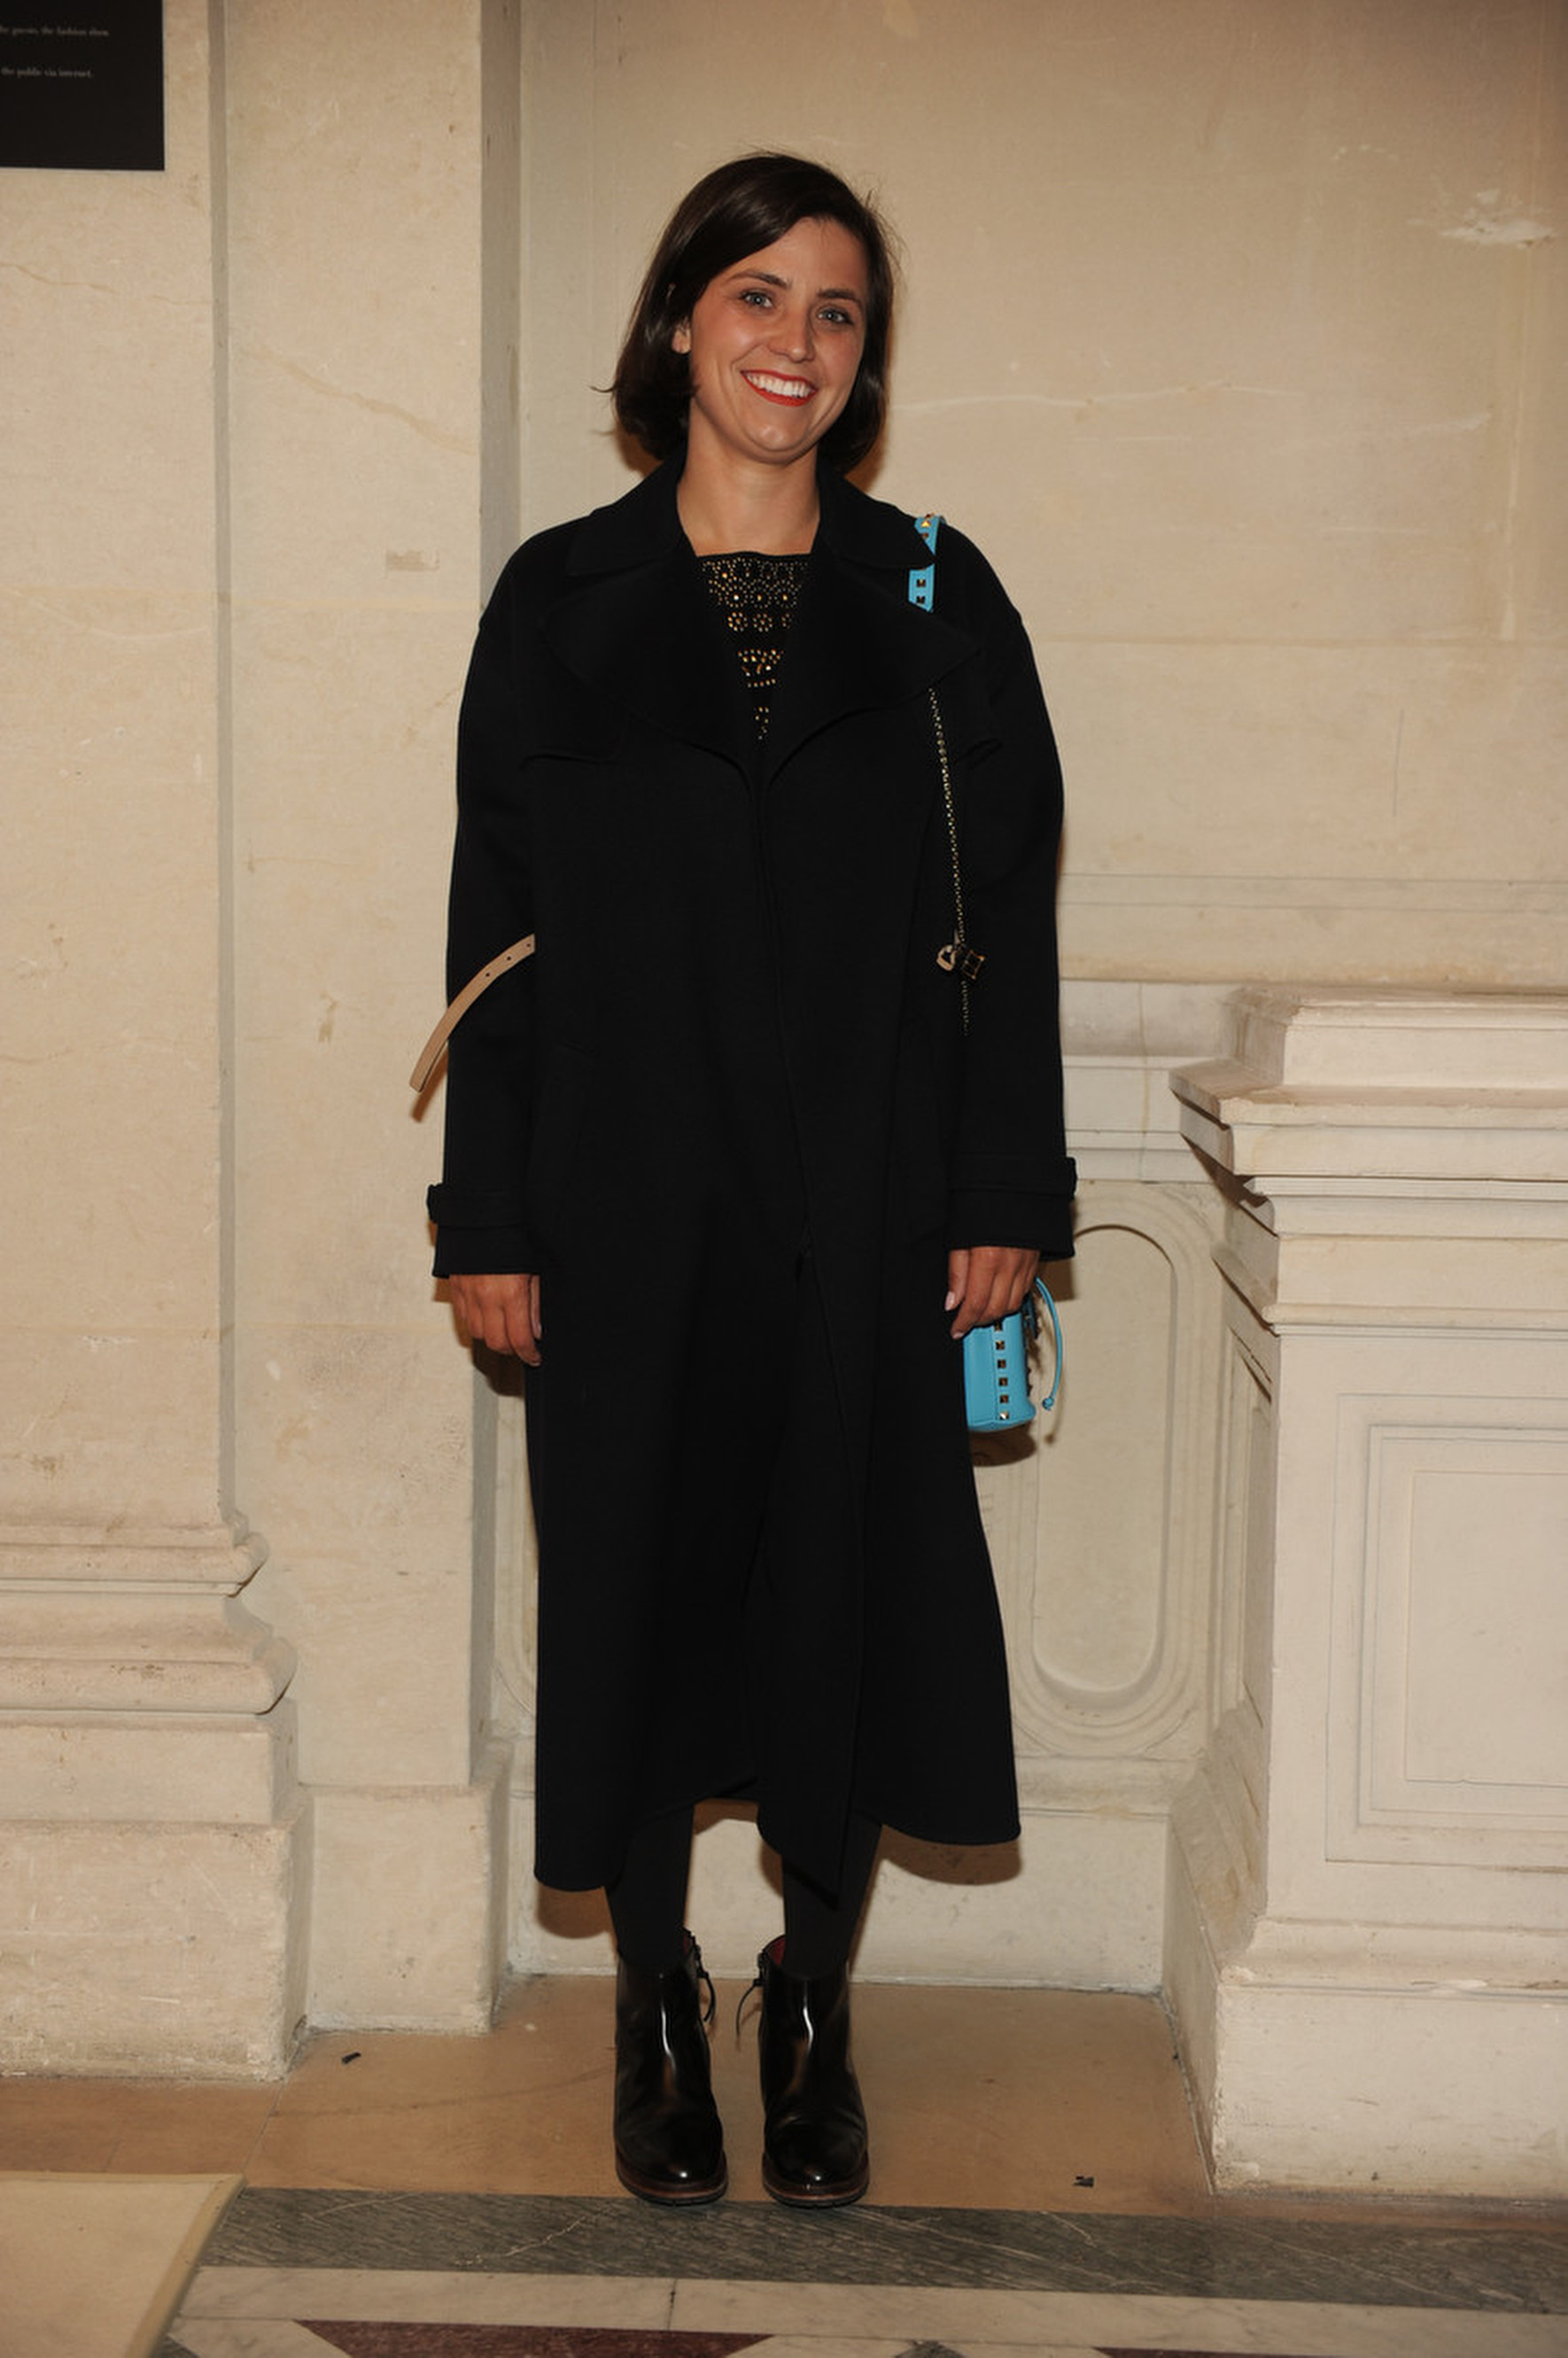 Esther_Stewart_-_January_21st_2015_-_Paris.JPG